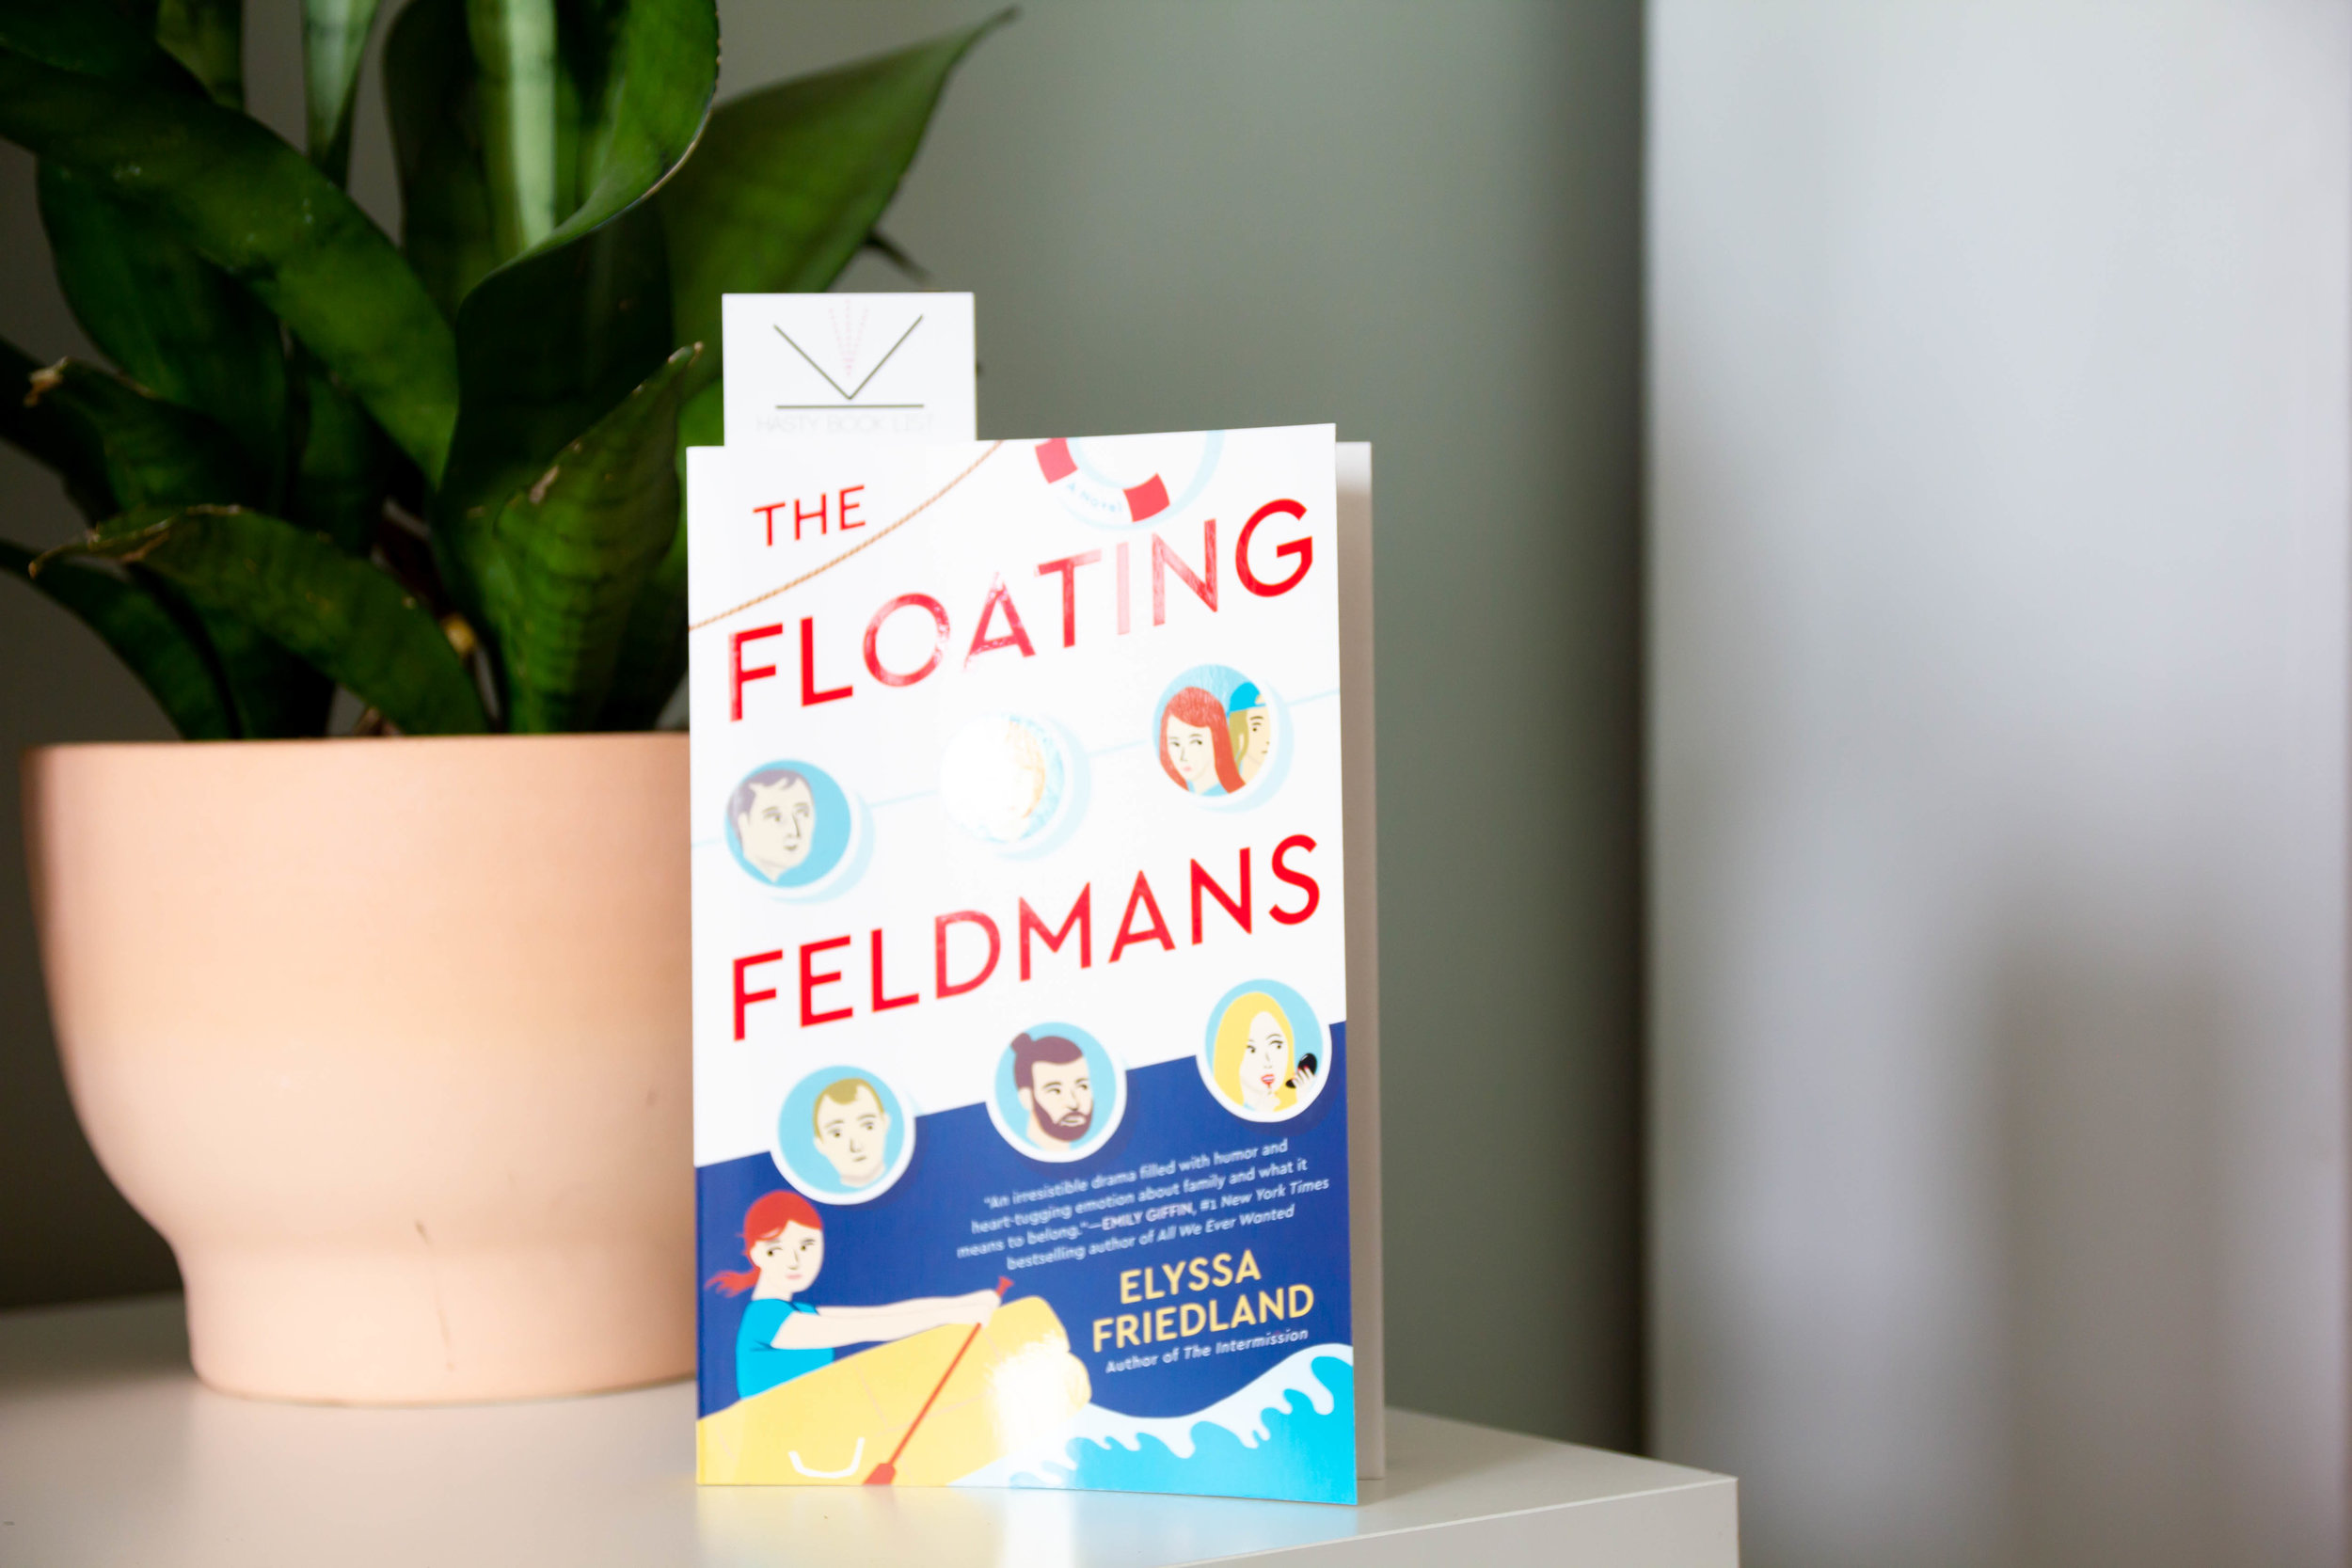 The Floating Feldmans by Elyssa Friedland - A family vacation dredges up a boatload of trouble in the next witty, insightful novel from the acclaimed author of The Intermission.